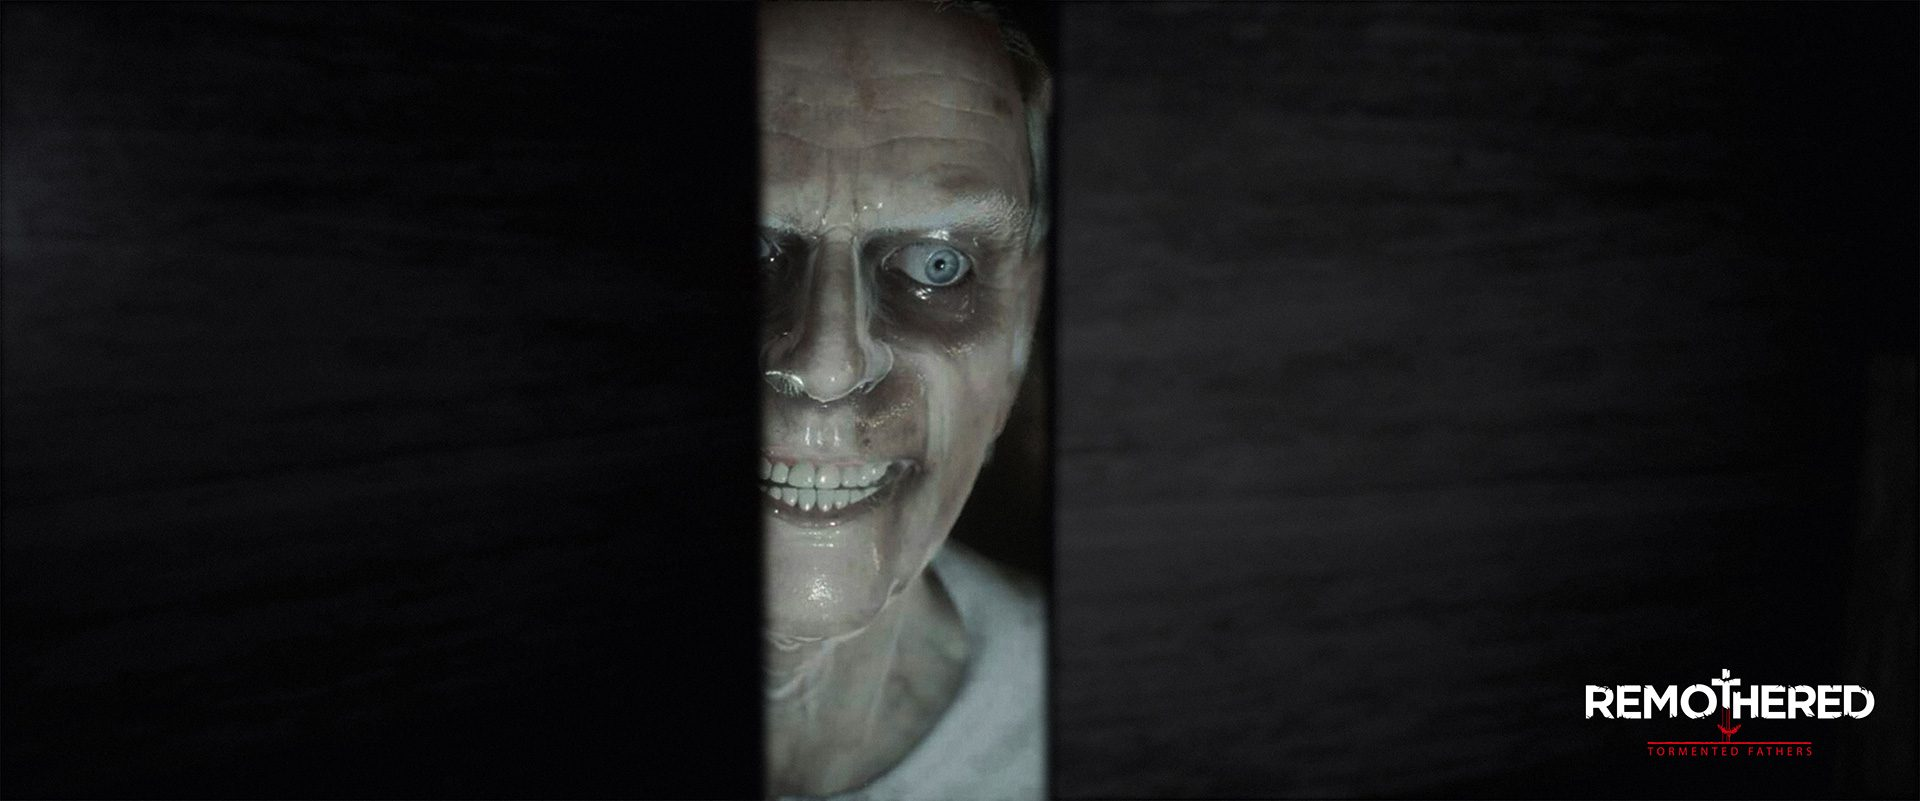 Remothered-Tormented-Fathers-.jpg